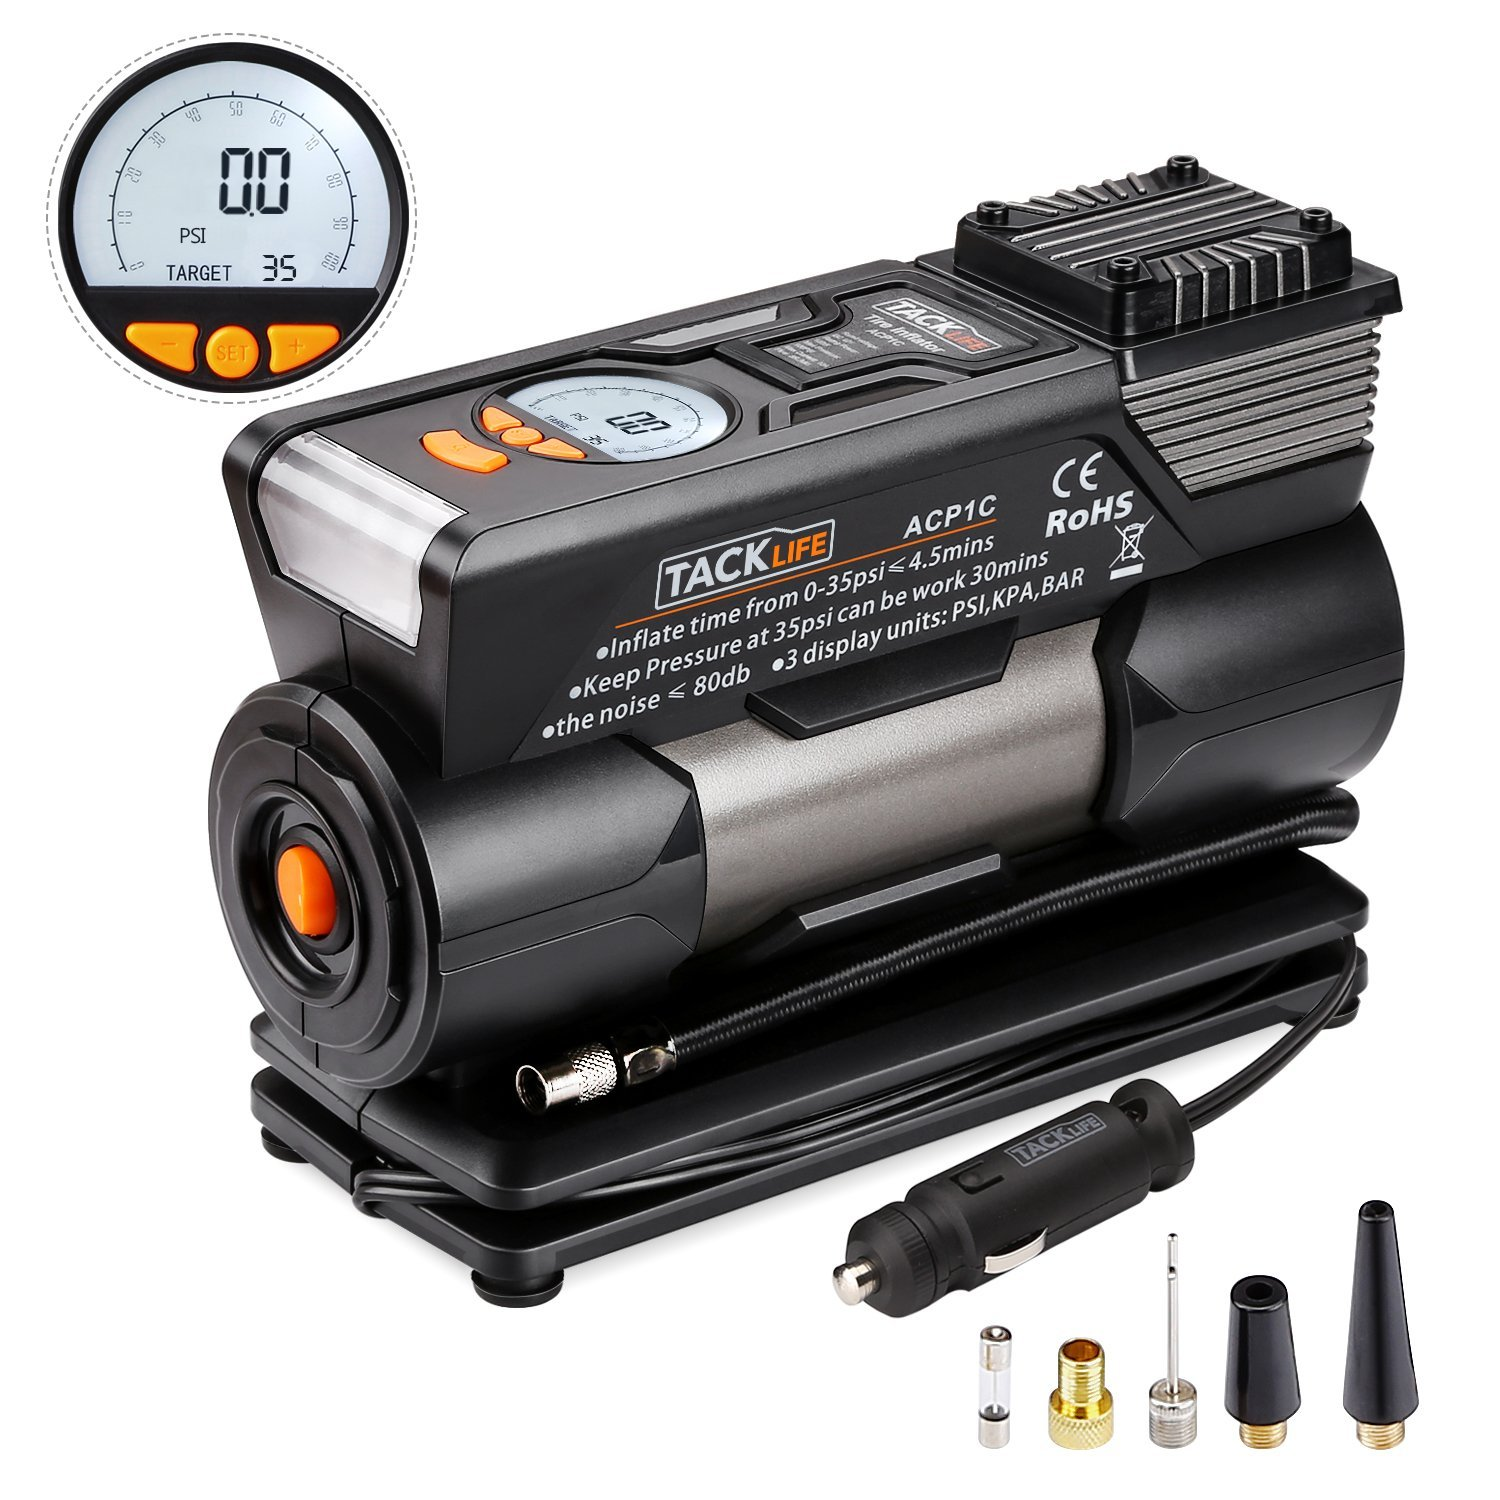 TACKLIFE Digital Tyre Inflator, ACP1C Air Compressor Pump, 12V Tyre Pump with Unique Continuous Inflation Function,Larger Backlight Display, LED Light, 3 Nozzle Adaptors and Extra Fuse(150PSI)